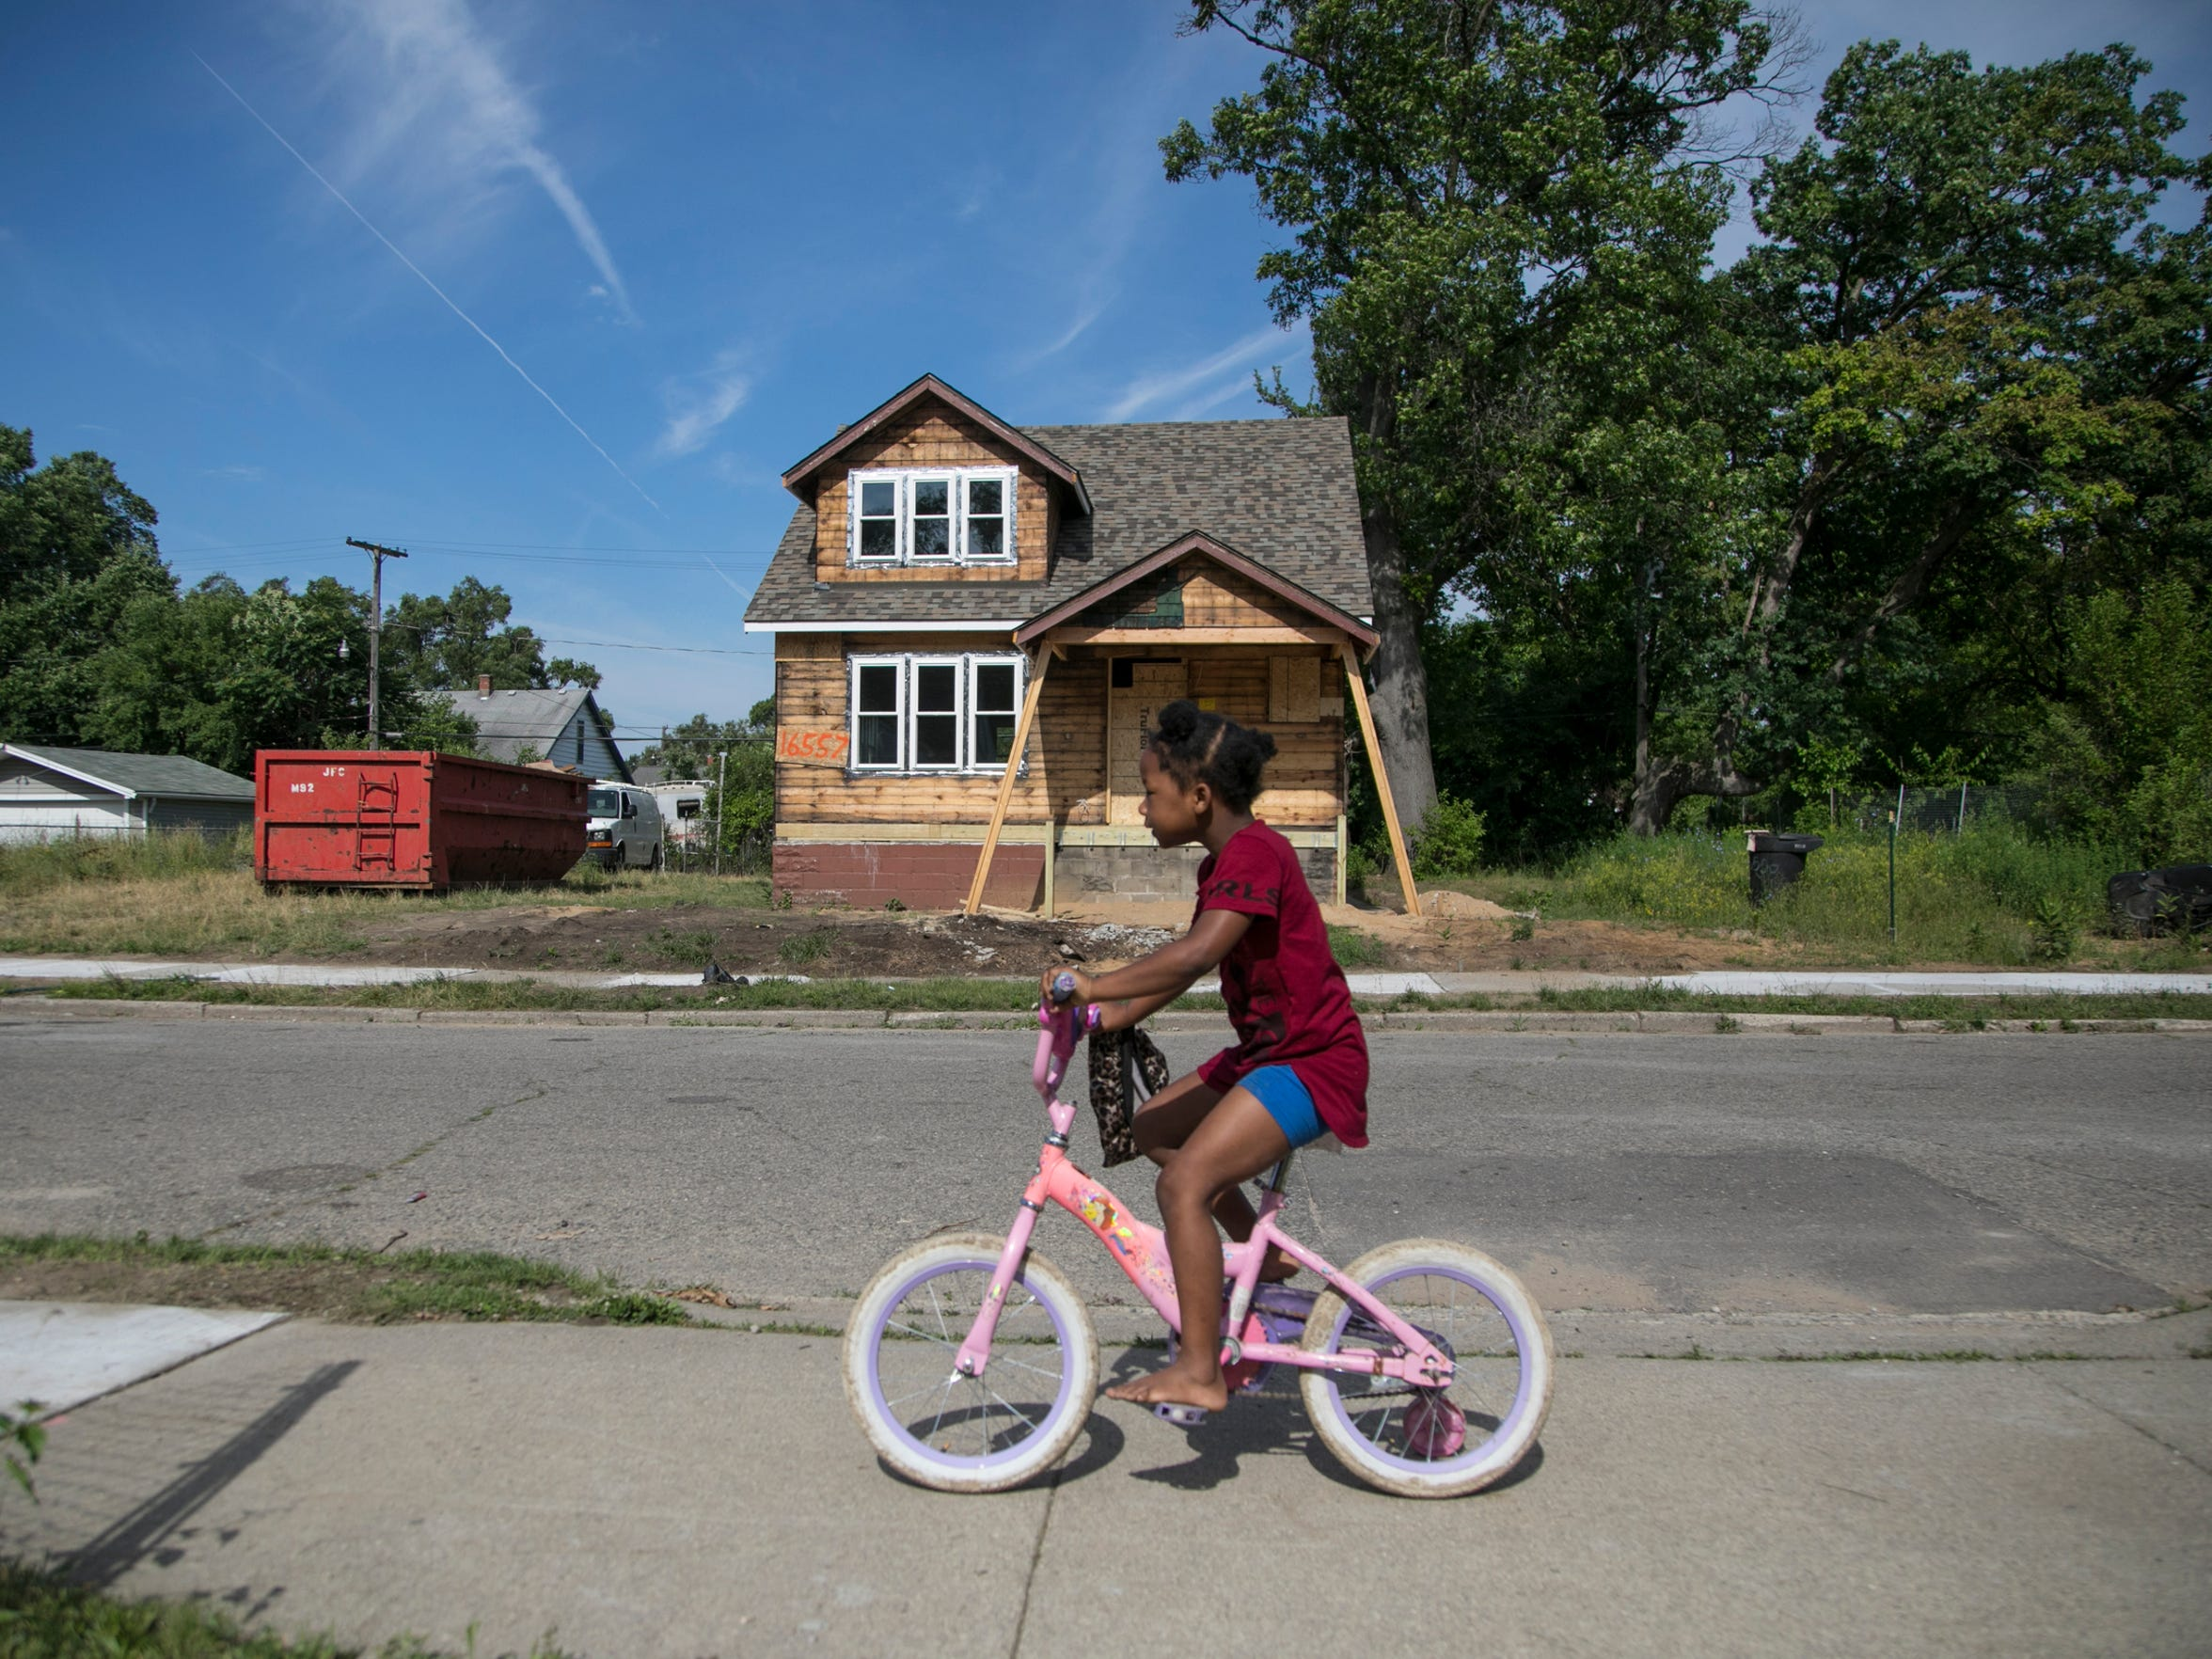 Darryona Ivory, 7, rides her bike past a house on San Juan Drive in the Fitzgerald neighborhood on June 25 in Detroit. The house is among three homes now under renovation as part of the Fitzgerald revitalization project. The project's developer is supposed to have 100 homes rehabbed by December 2020.